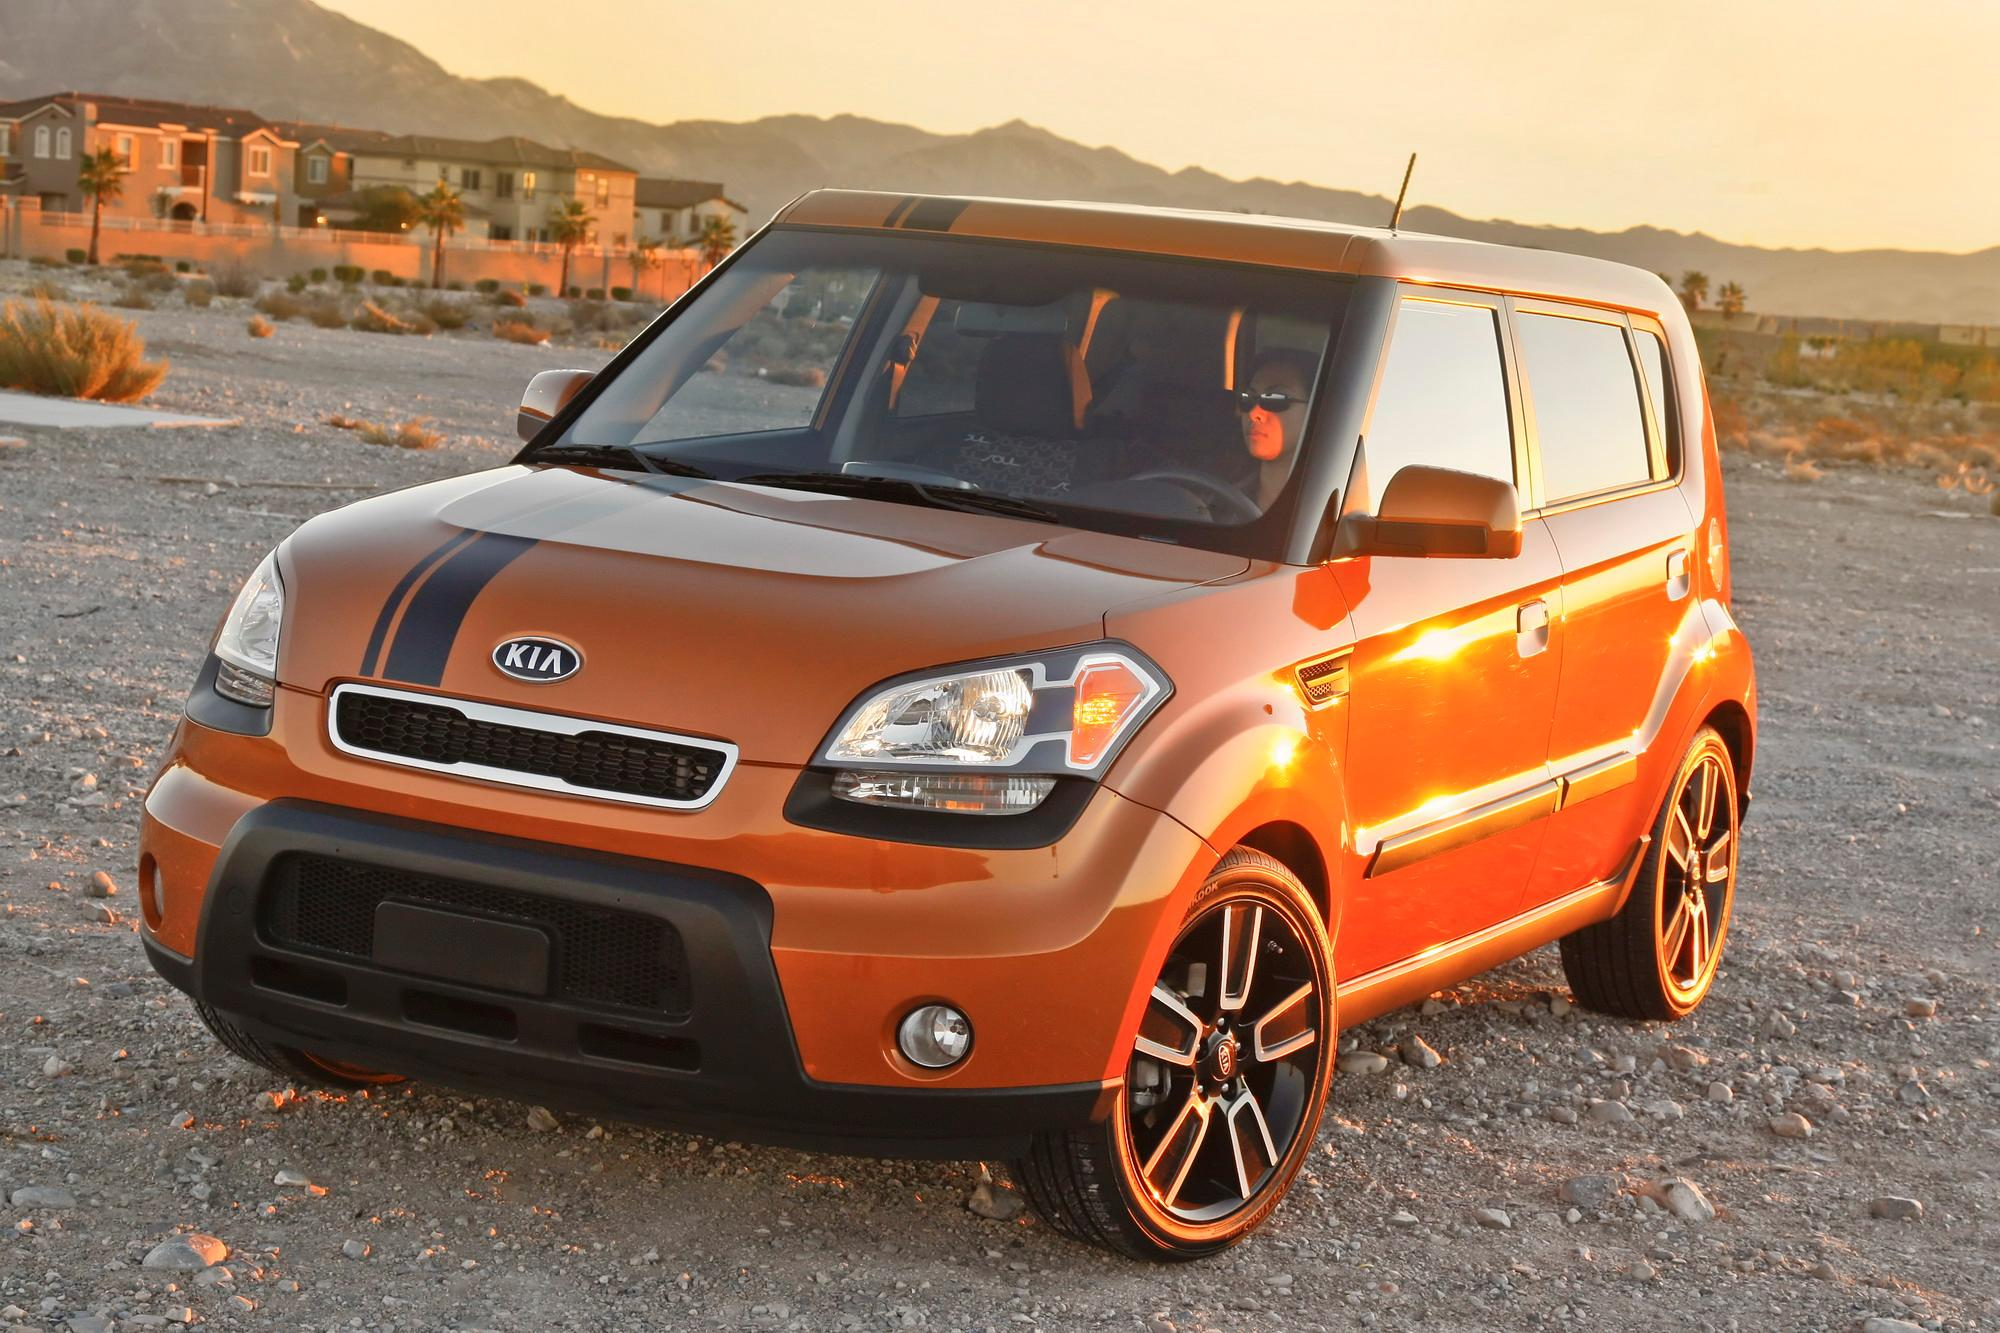 2010 Kia Ignition Soul Top Speed